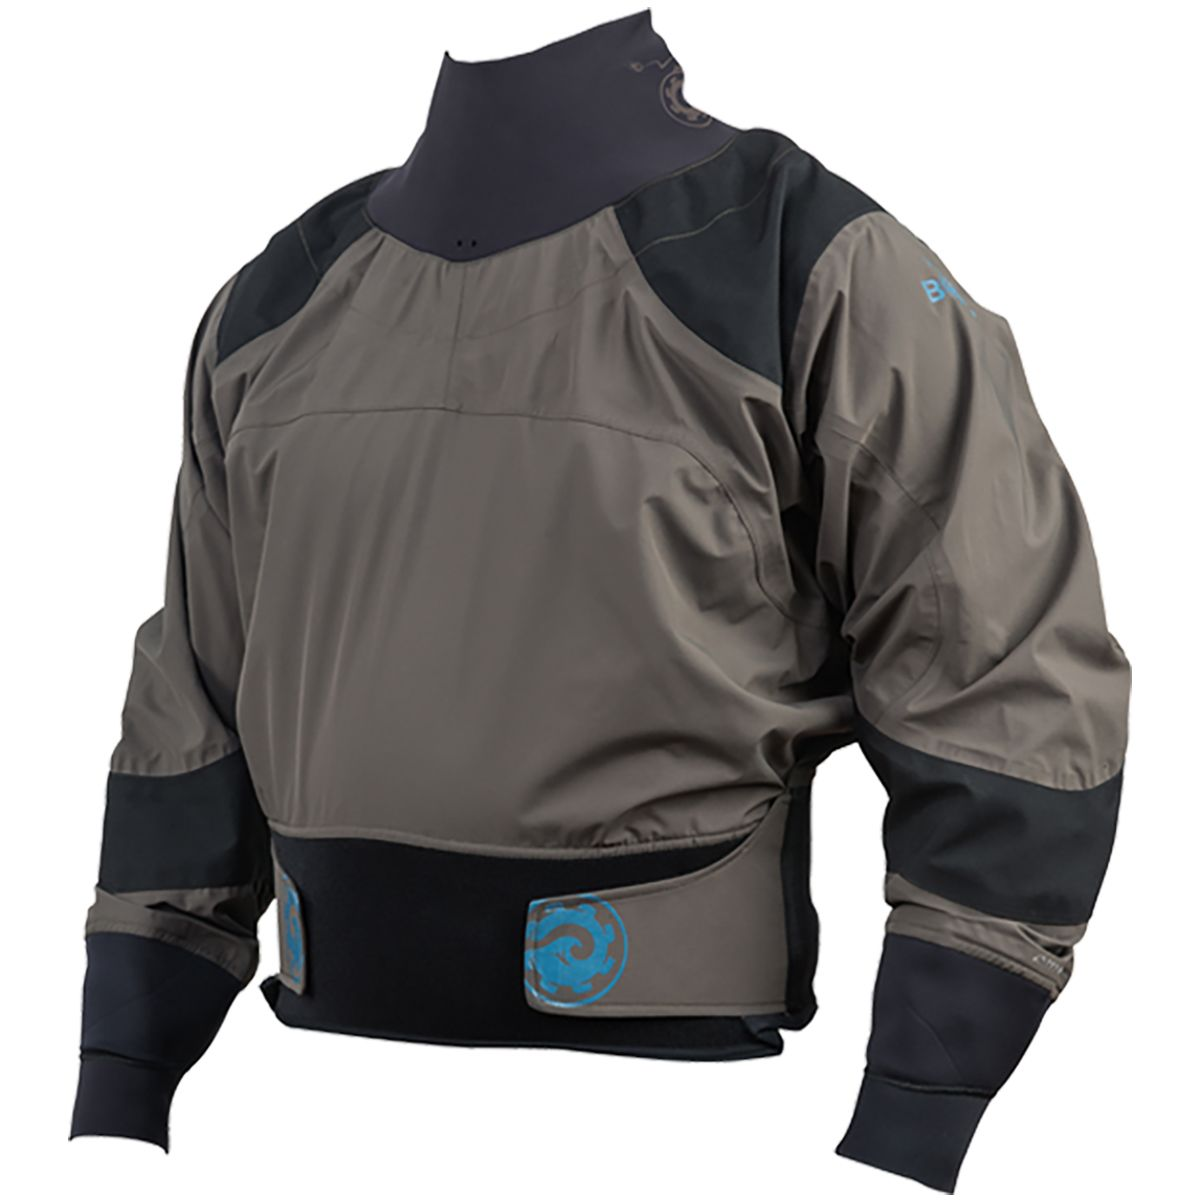 Bomber Gear Palguin Long Sleeve Dry Top